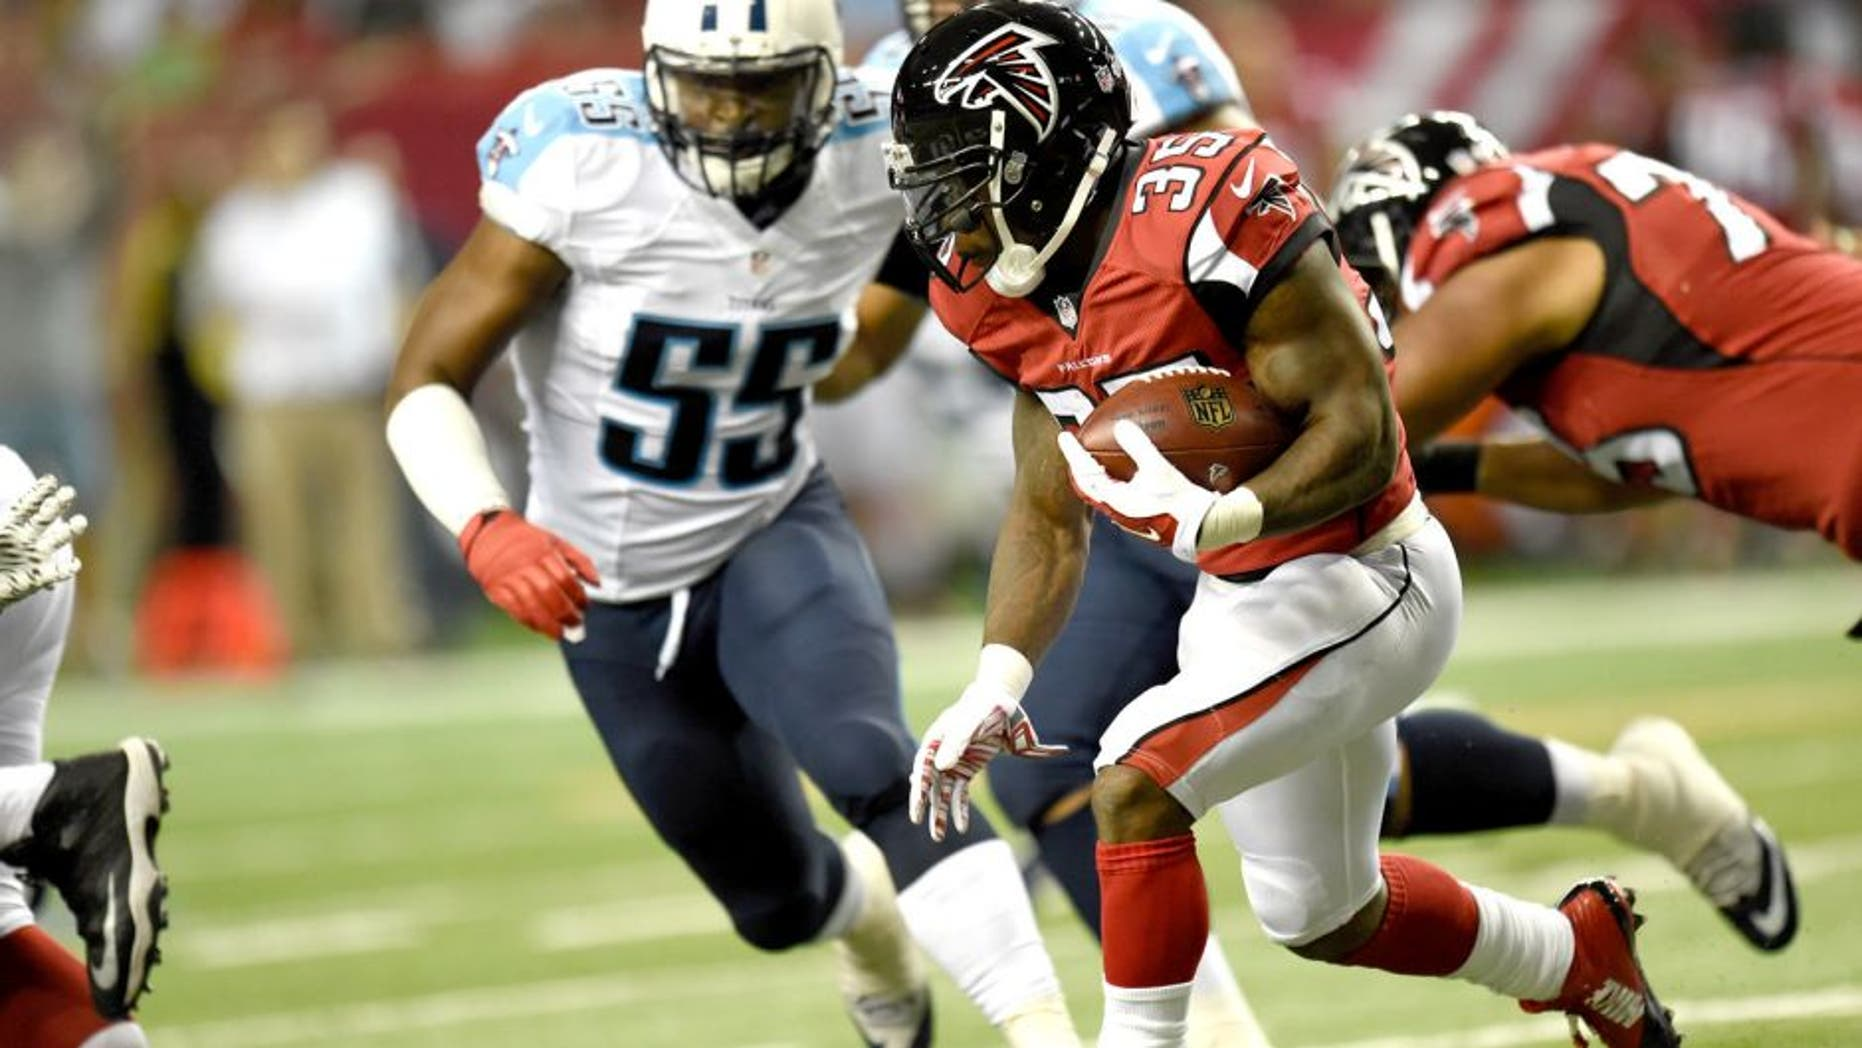 Aug 14, 2015; Atlanta, GA, USA; Atlanta Falcons running back Antone Smith (35) runs past Tennessee Titans linebacker Zach Brown (55) during the first half at the Georgia Dome. The Falcons defeated the Titans 31-24. Mandatory Credit: Dale Zanine-USA TODAY Sports